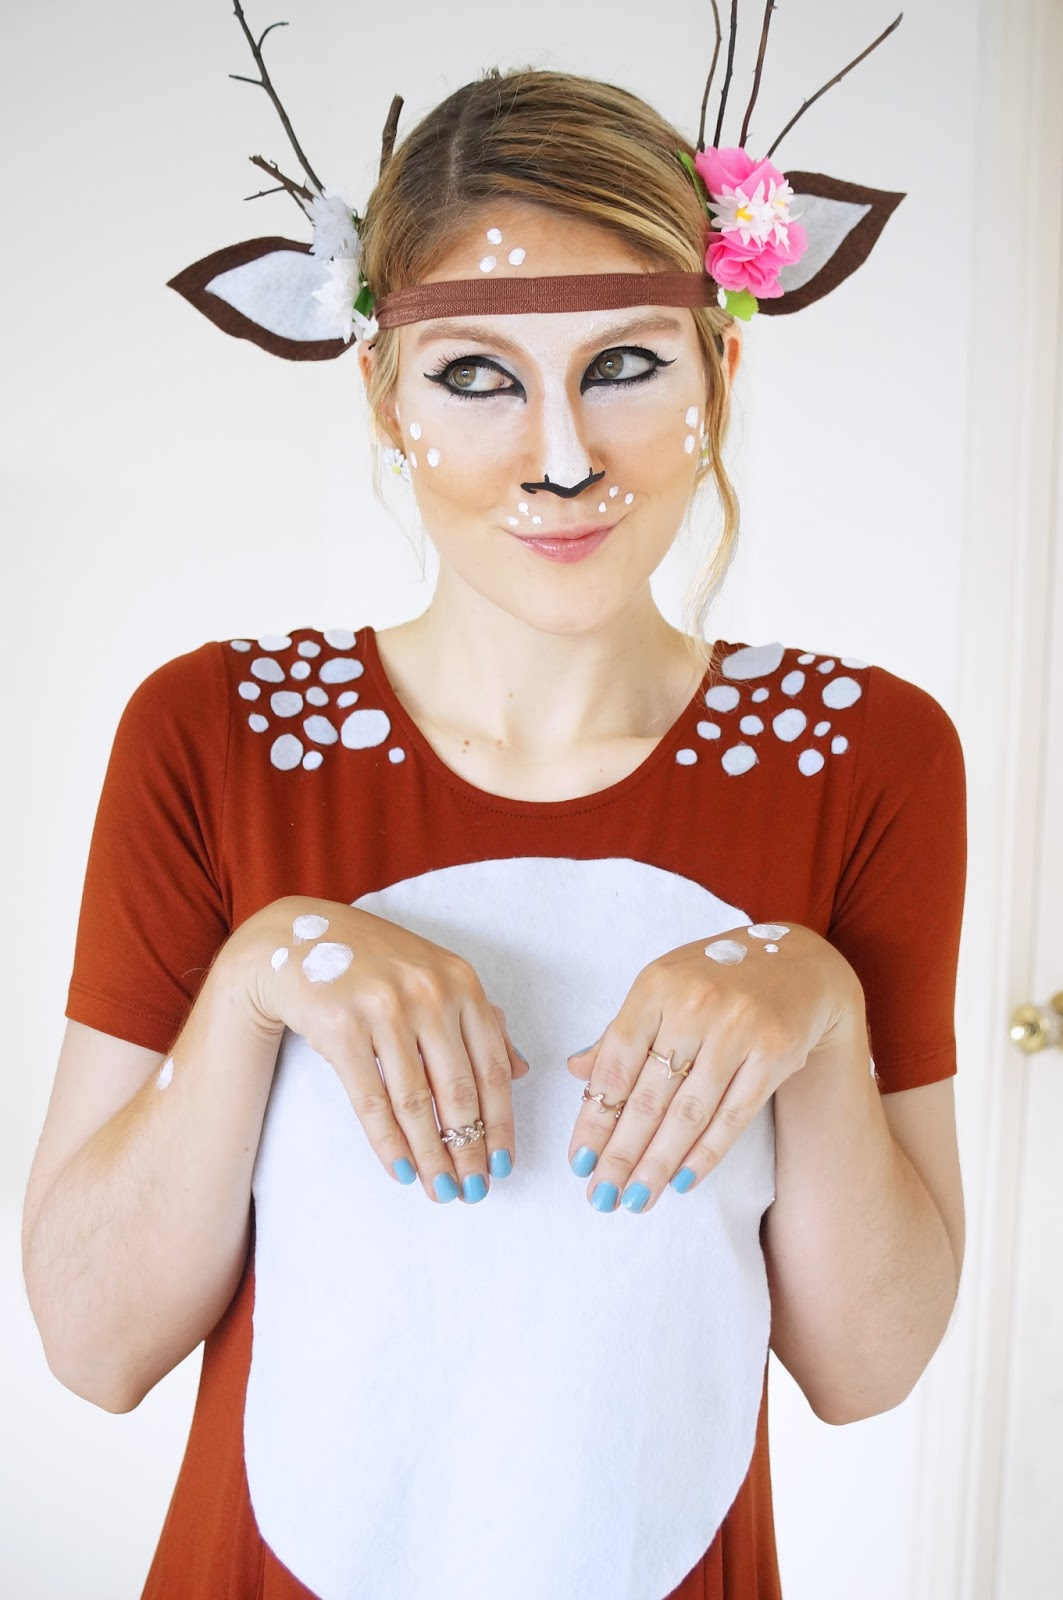 Easy Homemade Deer Costume Tutorial for Halloween